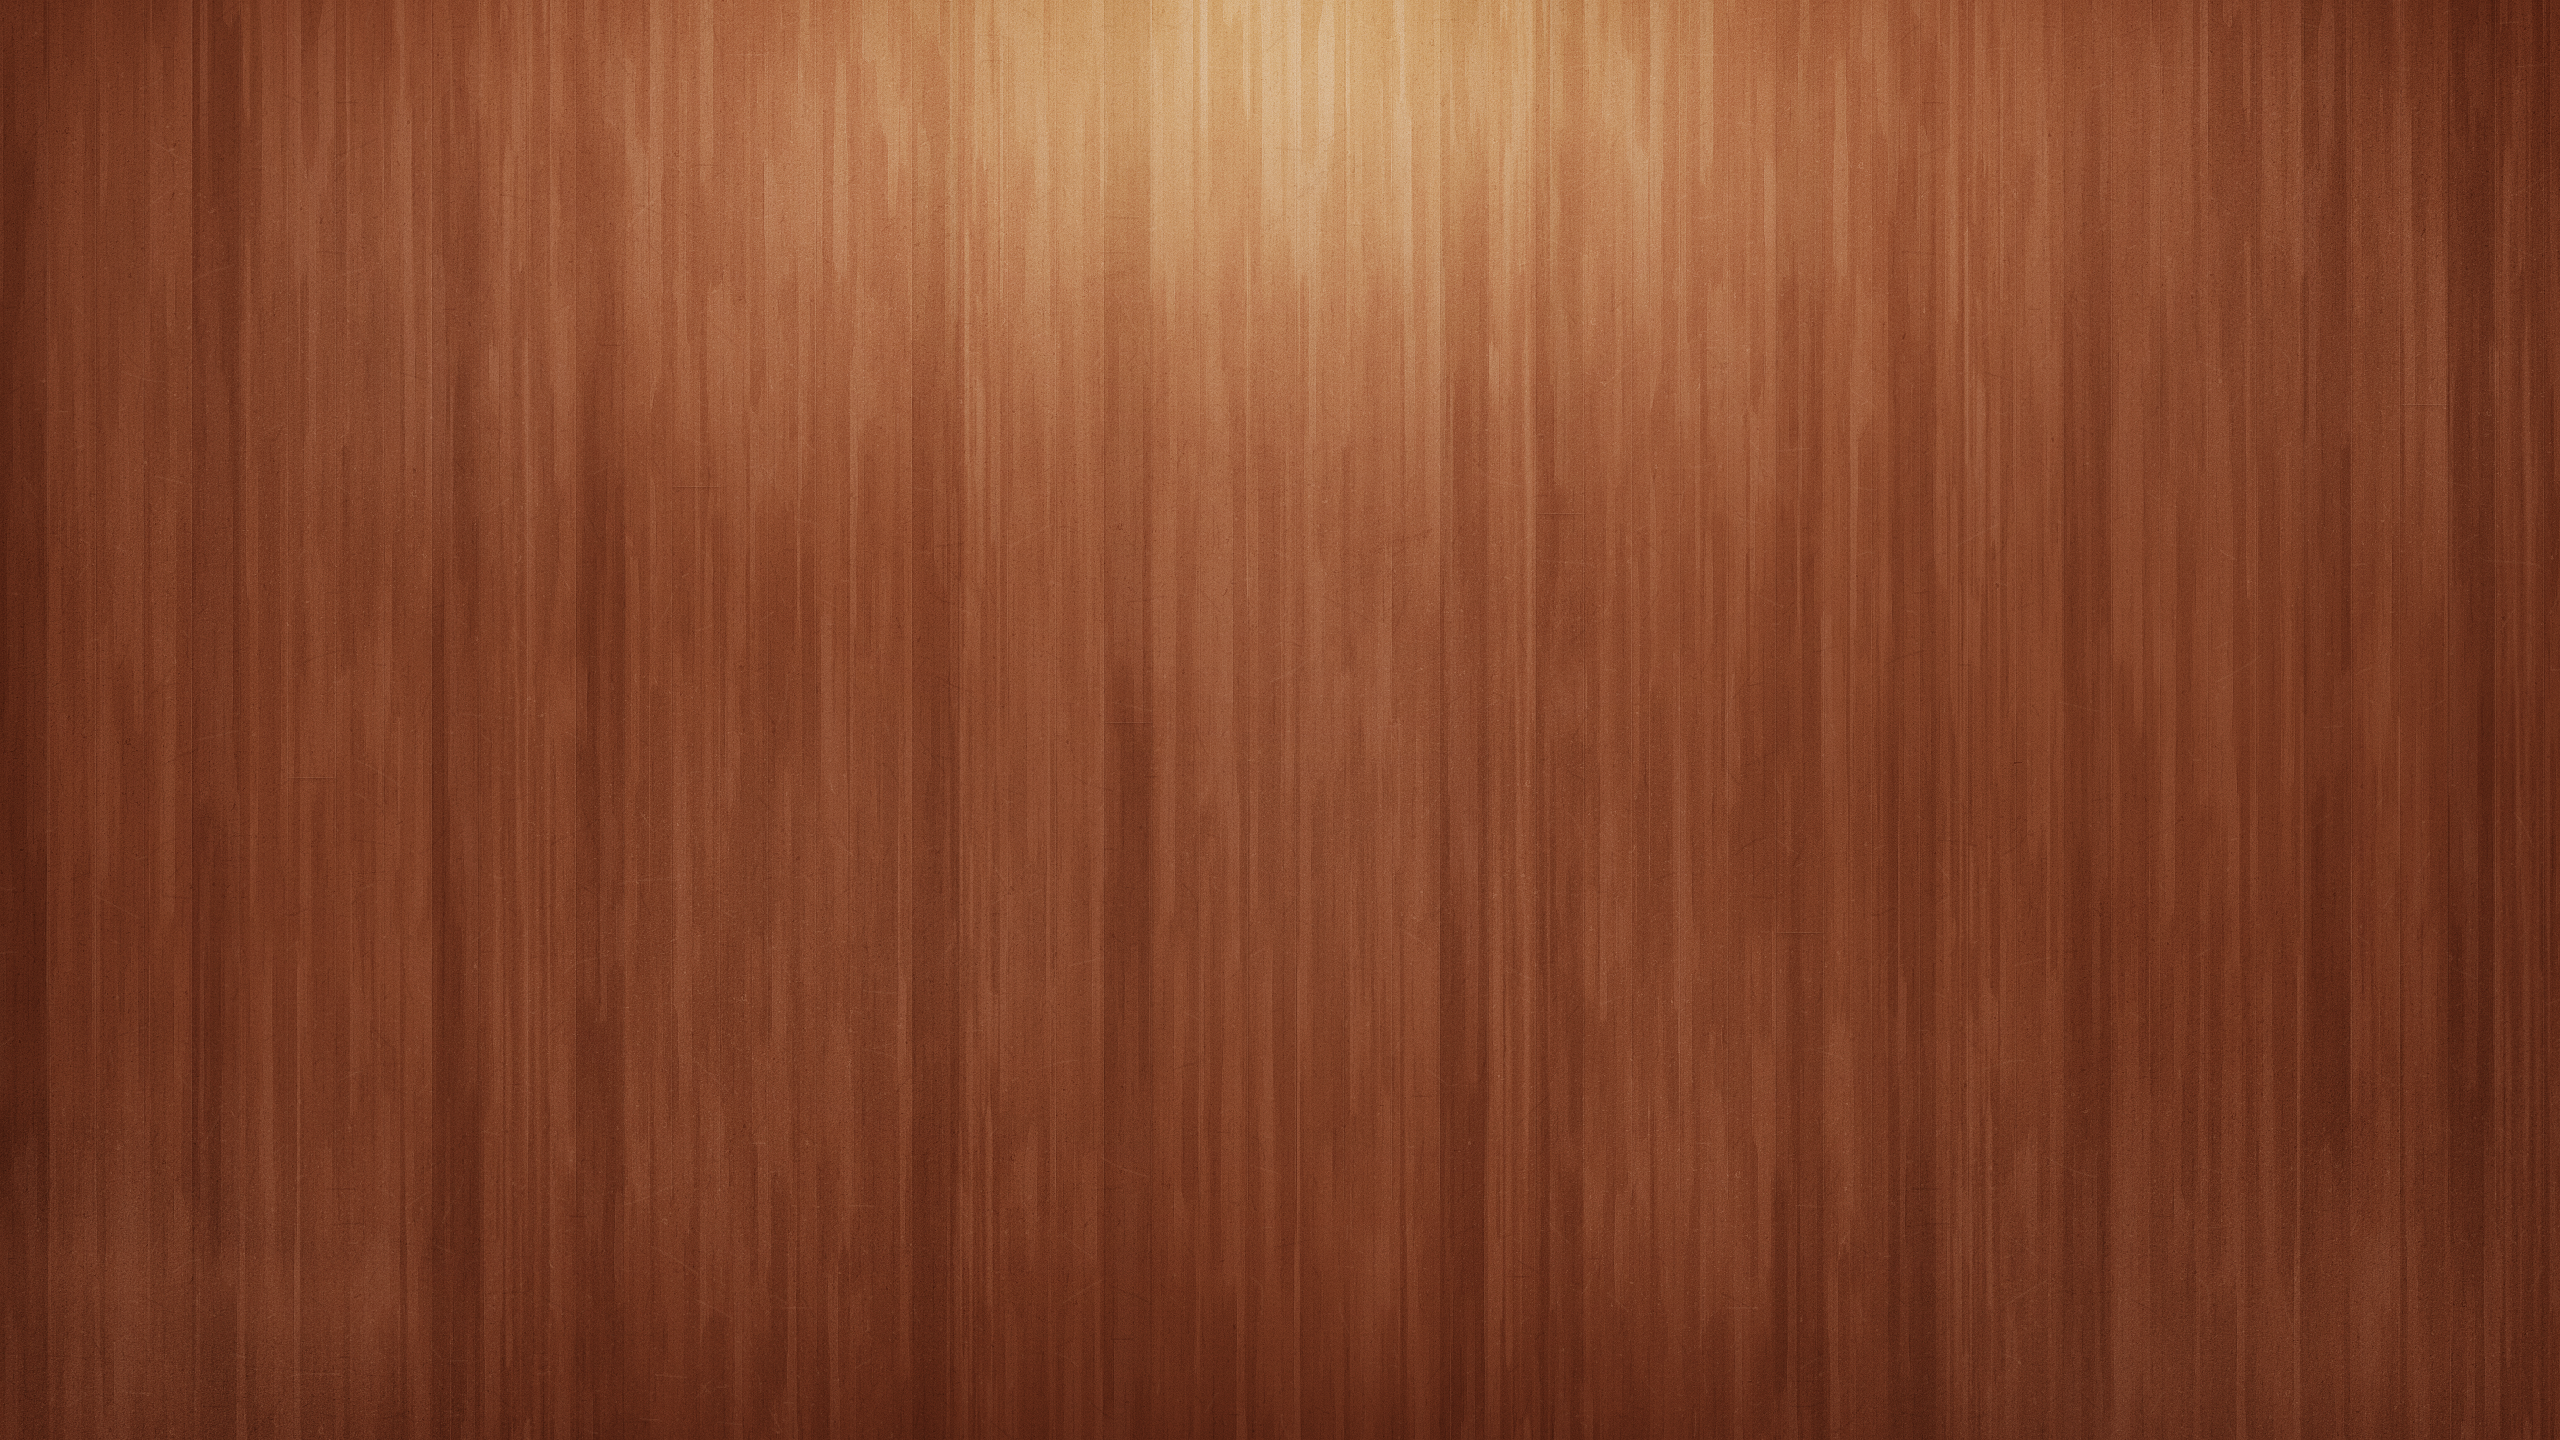 Natural Wood Wallpaper 2560x1440